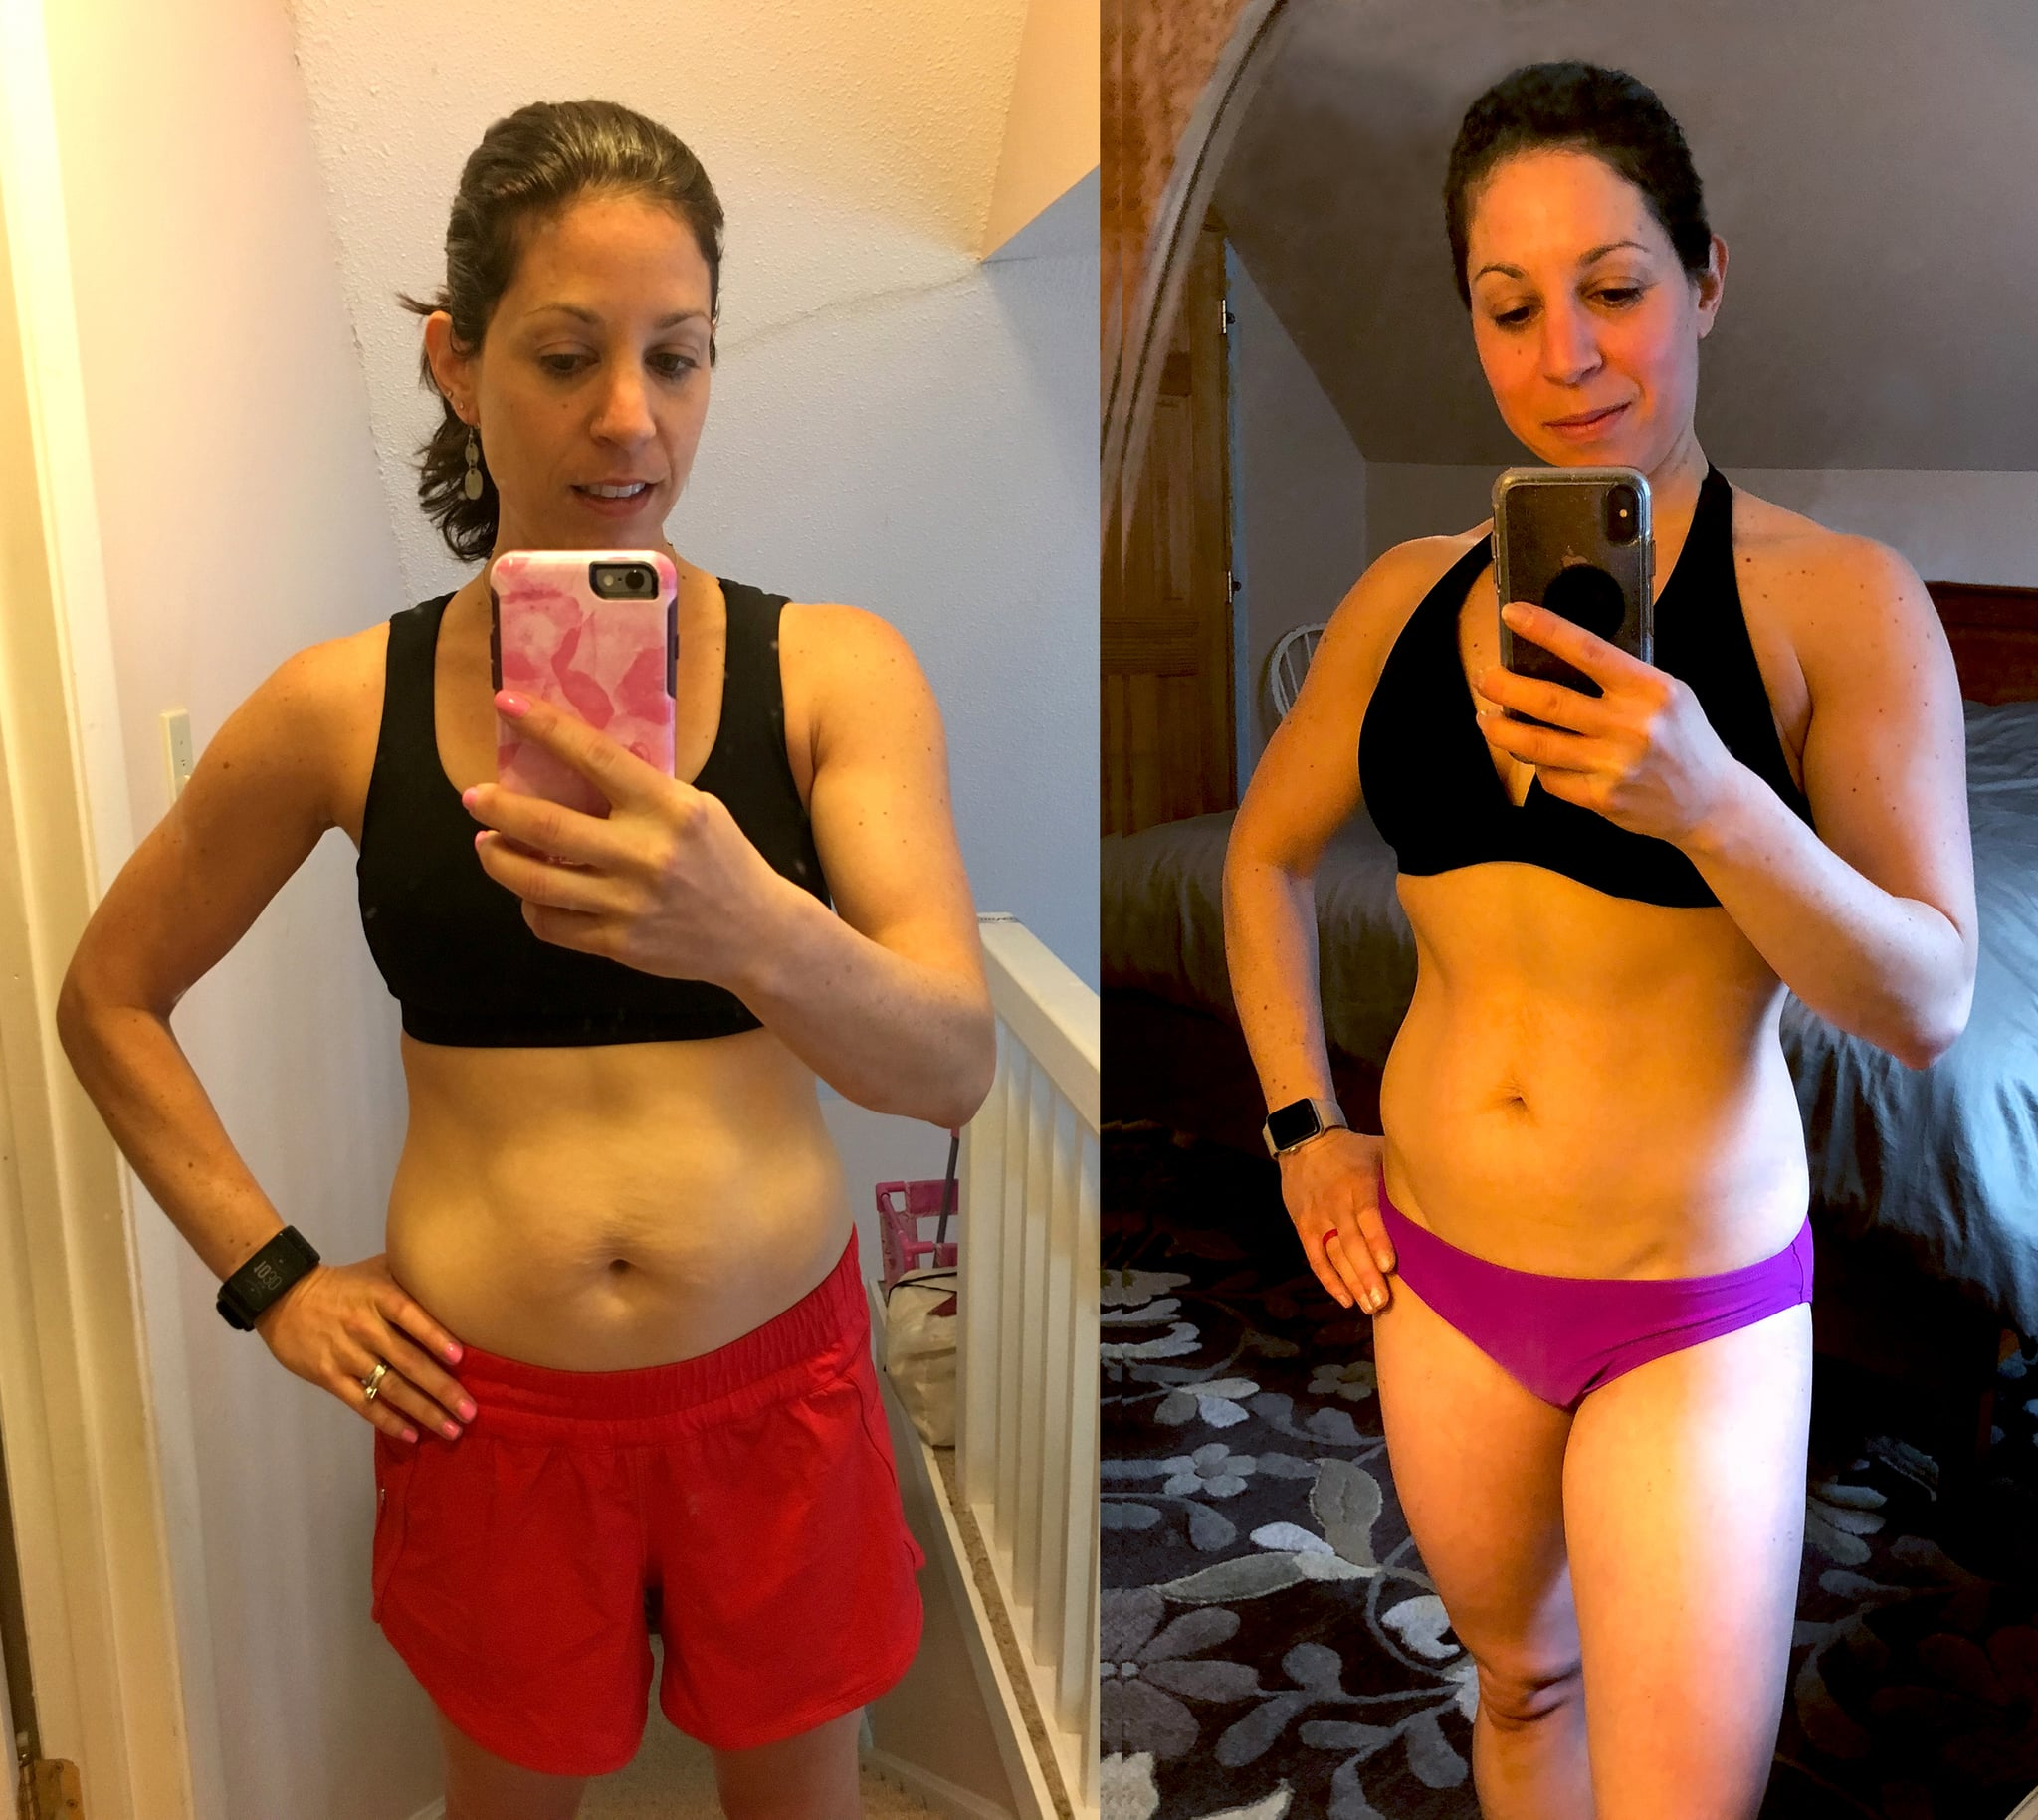 Will intermittent fasting help me lose belly fat popsugar fitness a little belly and have always felt self conscious i exercise regularly and eat healthy but came to accept that this is how my body is meant to look ccuart Image collections